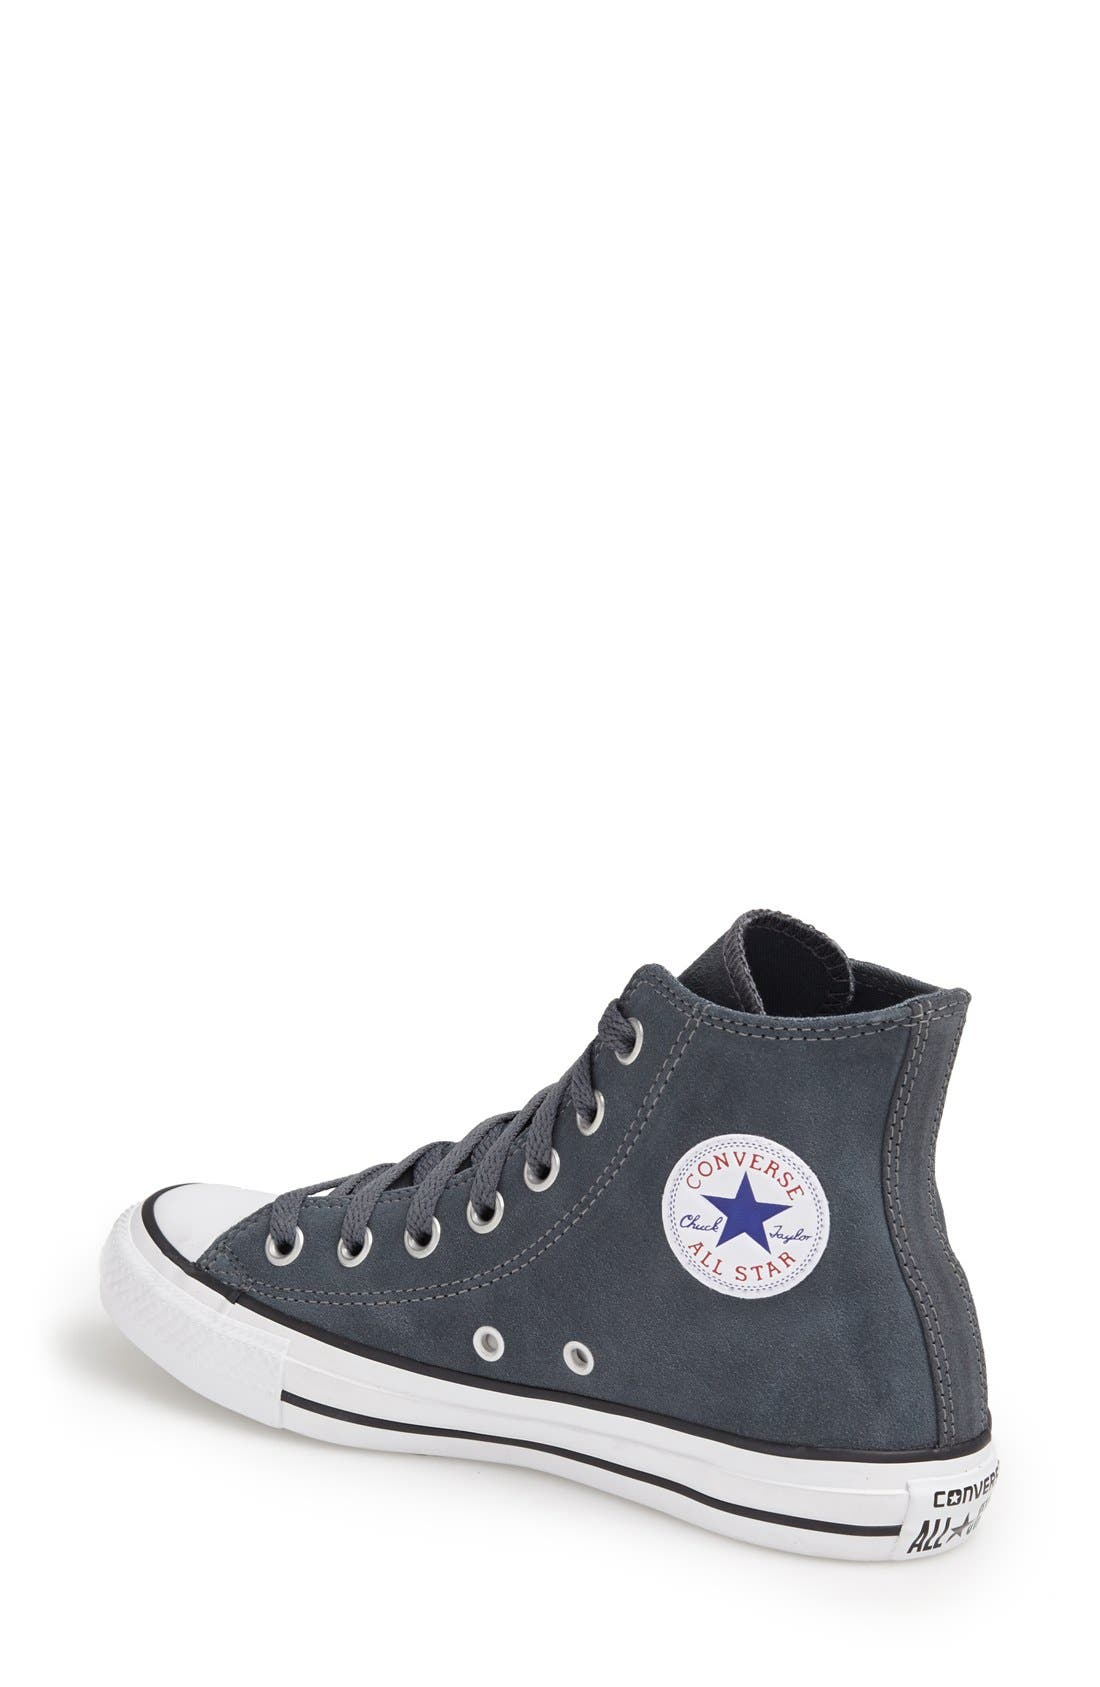 Alternate Image 3  - Converse Chuck Taylor® All Star® Suede High Top Sneaker (Women)